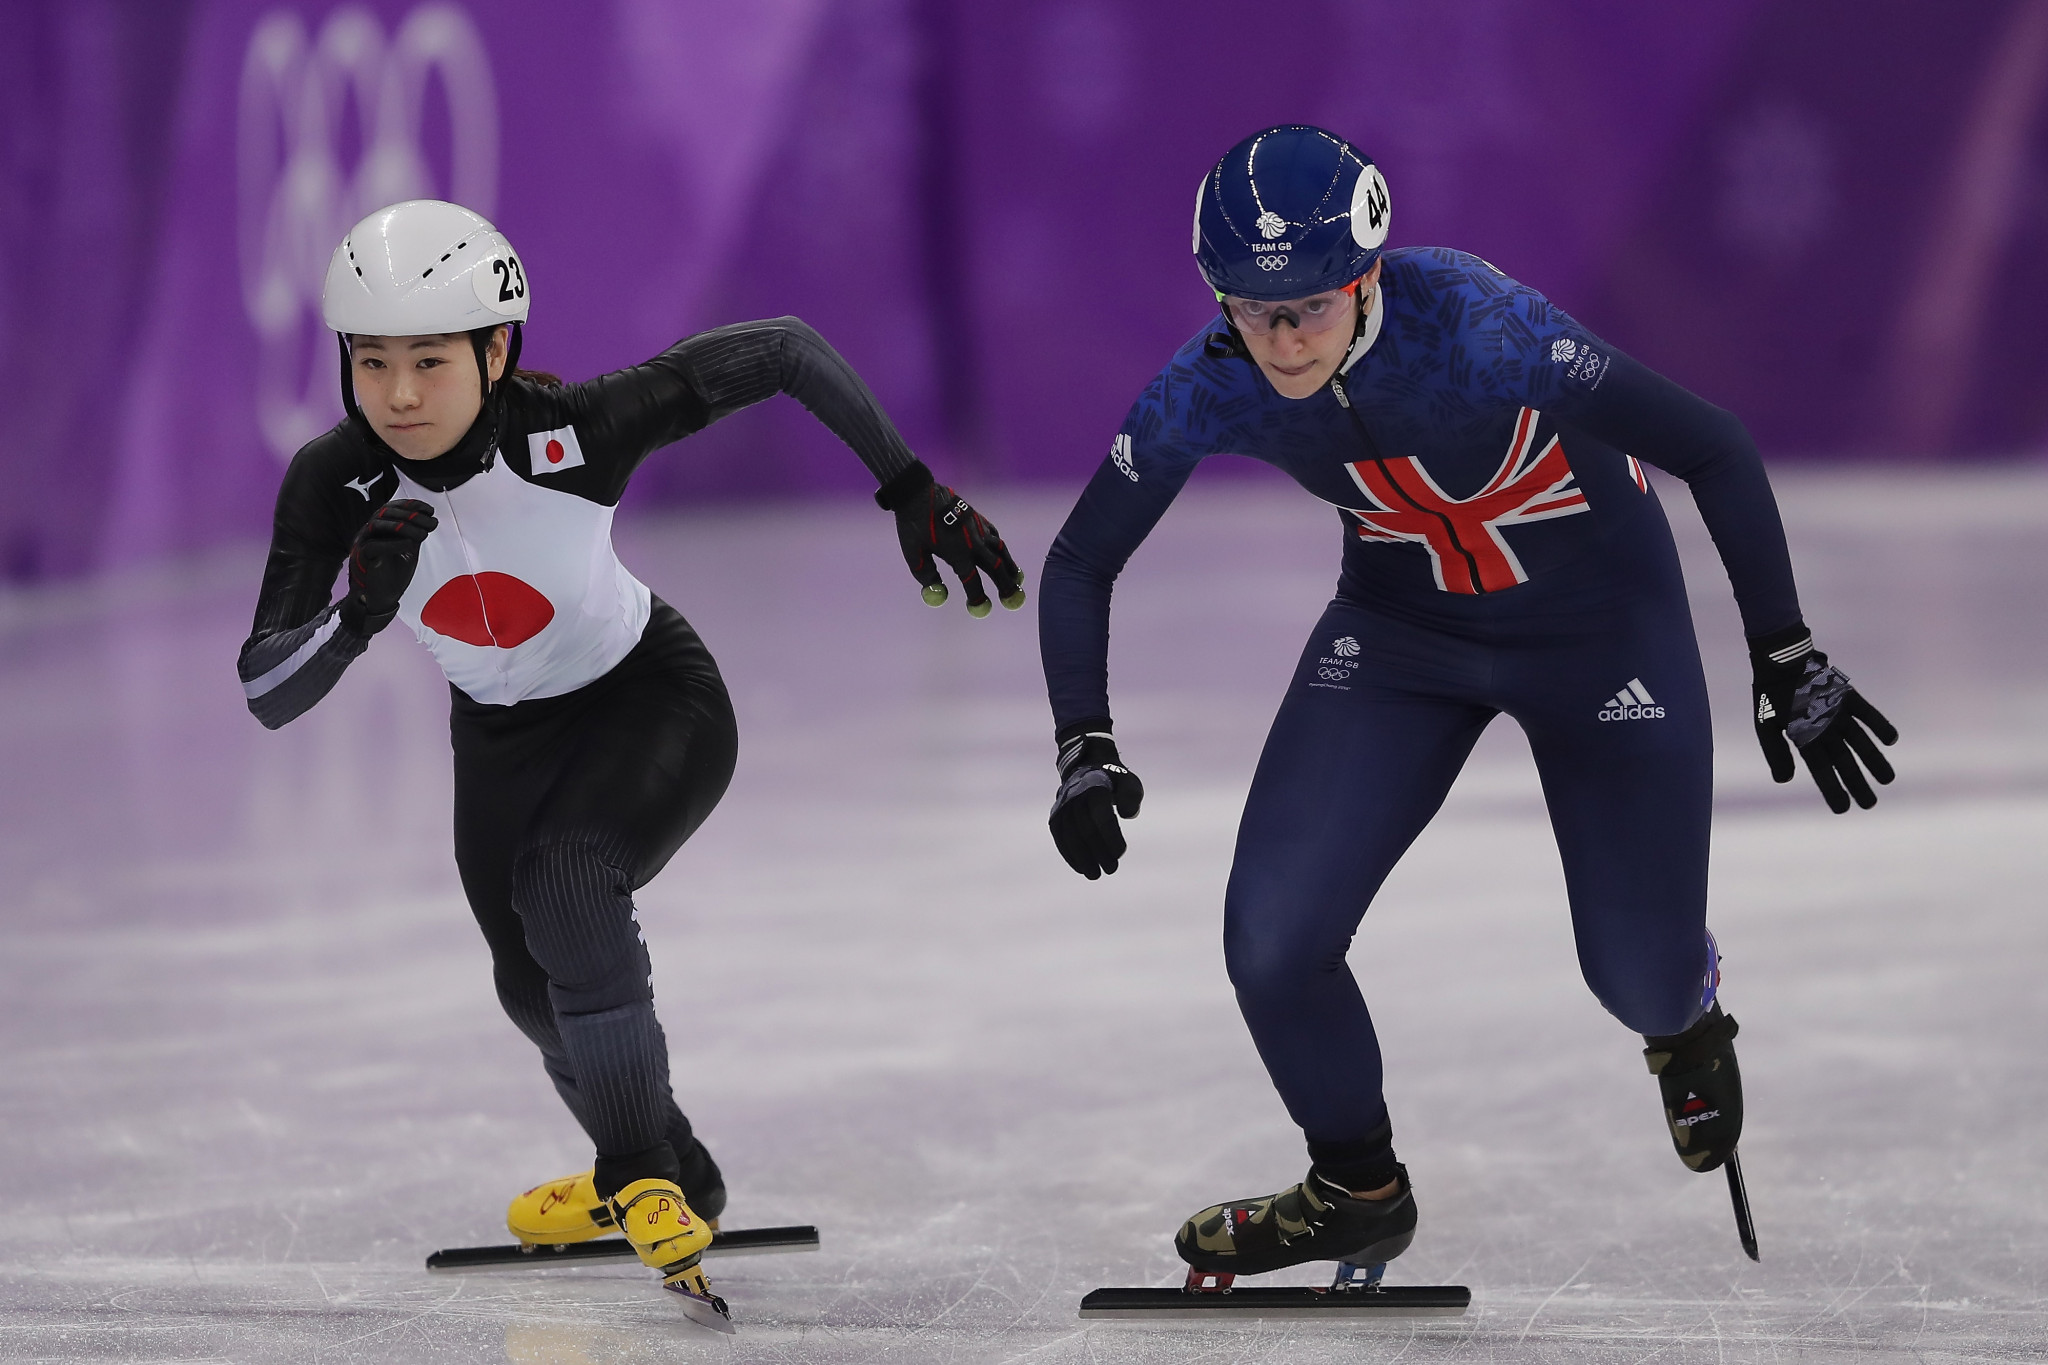 Charlotte Gilmartin, right, pictured during the 1,000m heats at Pyeongchang 2018 ©Getty Images